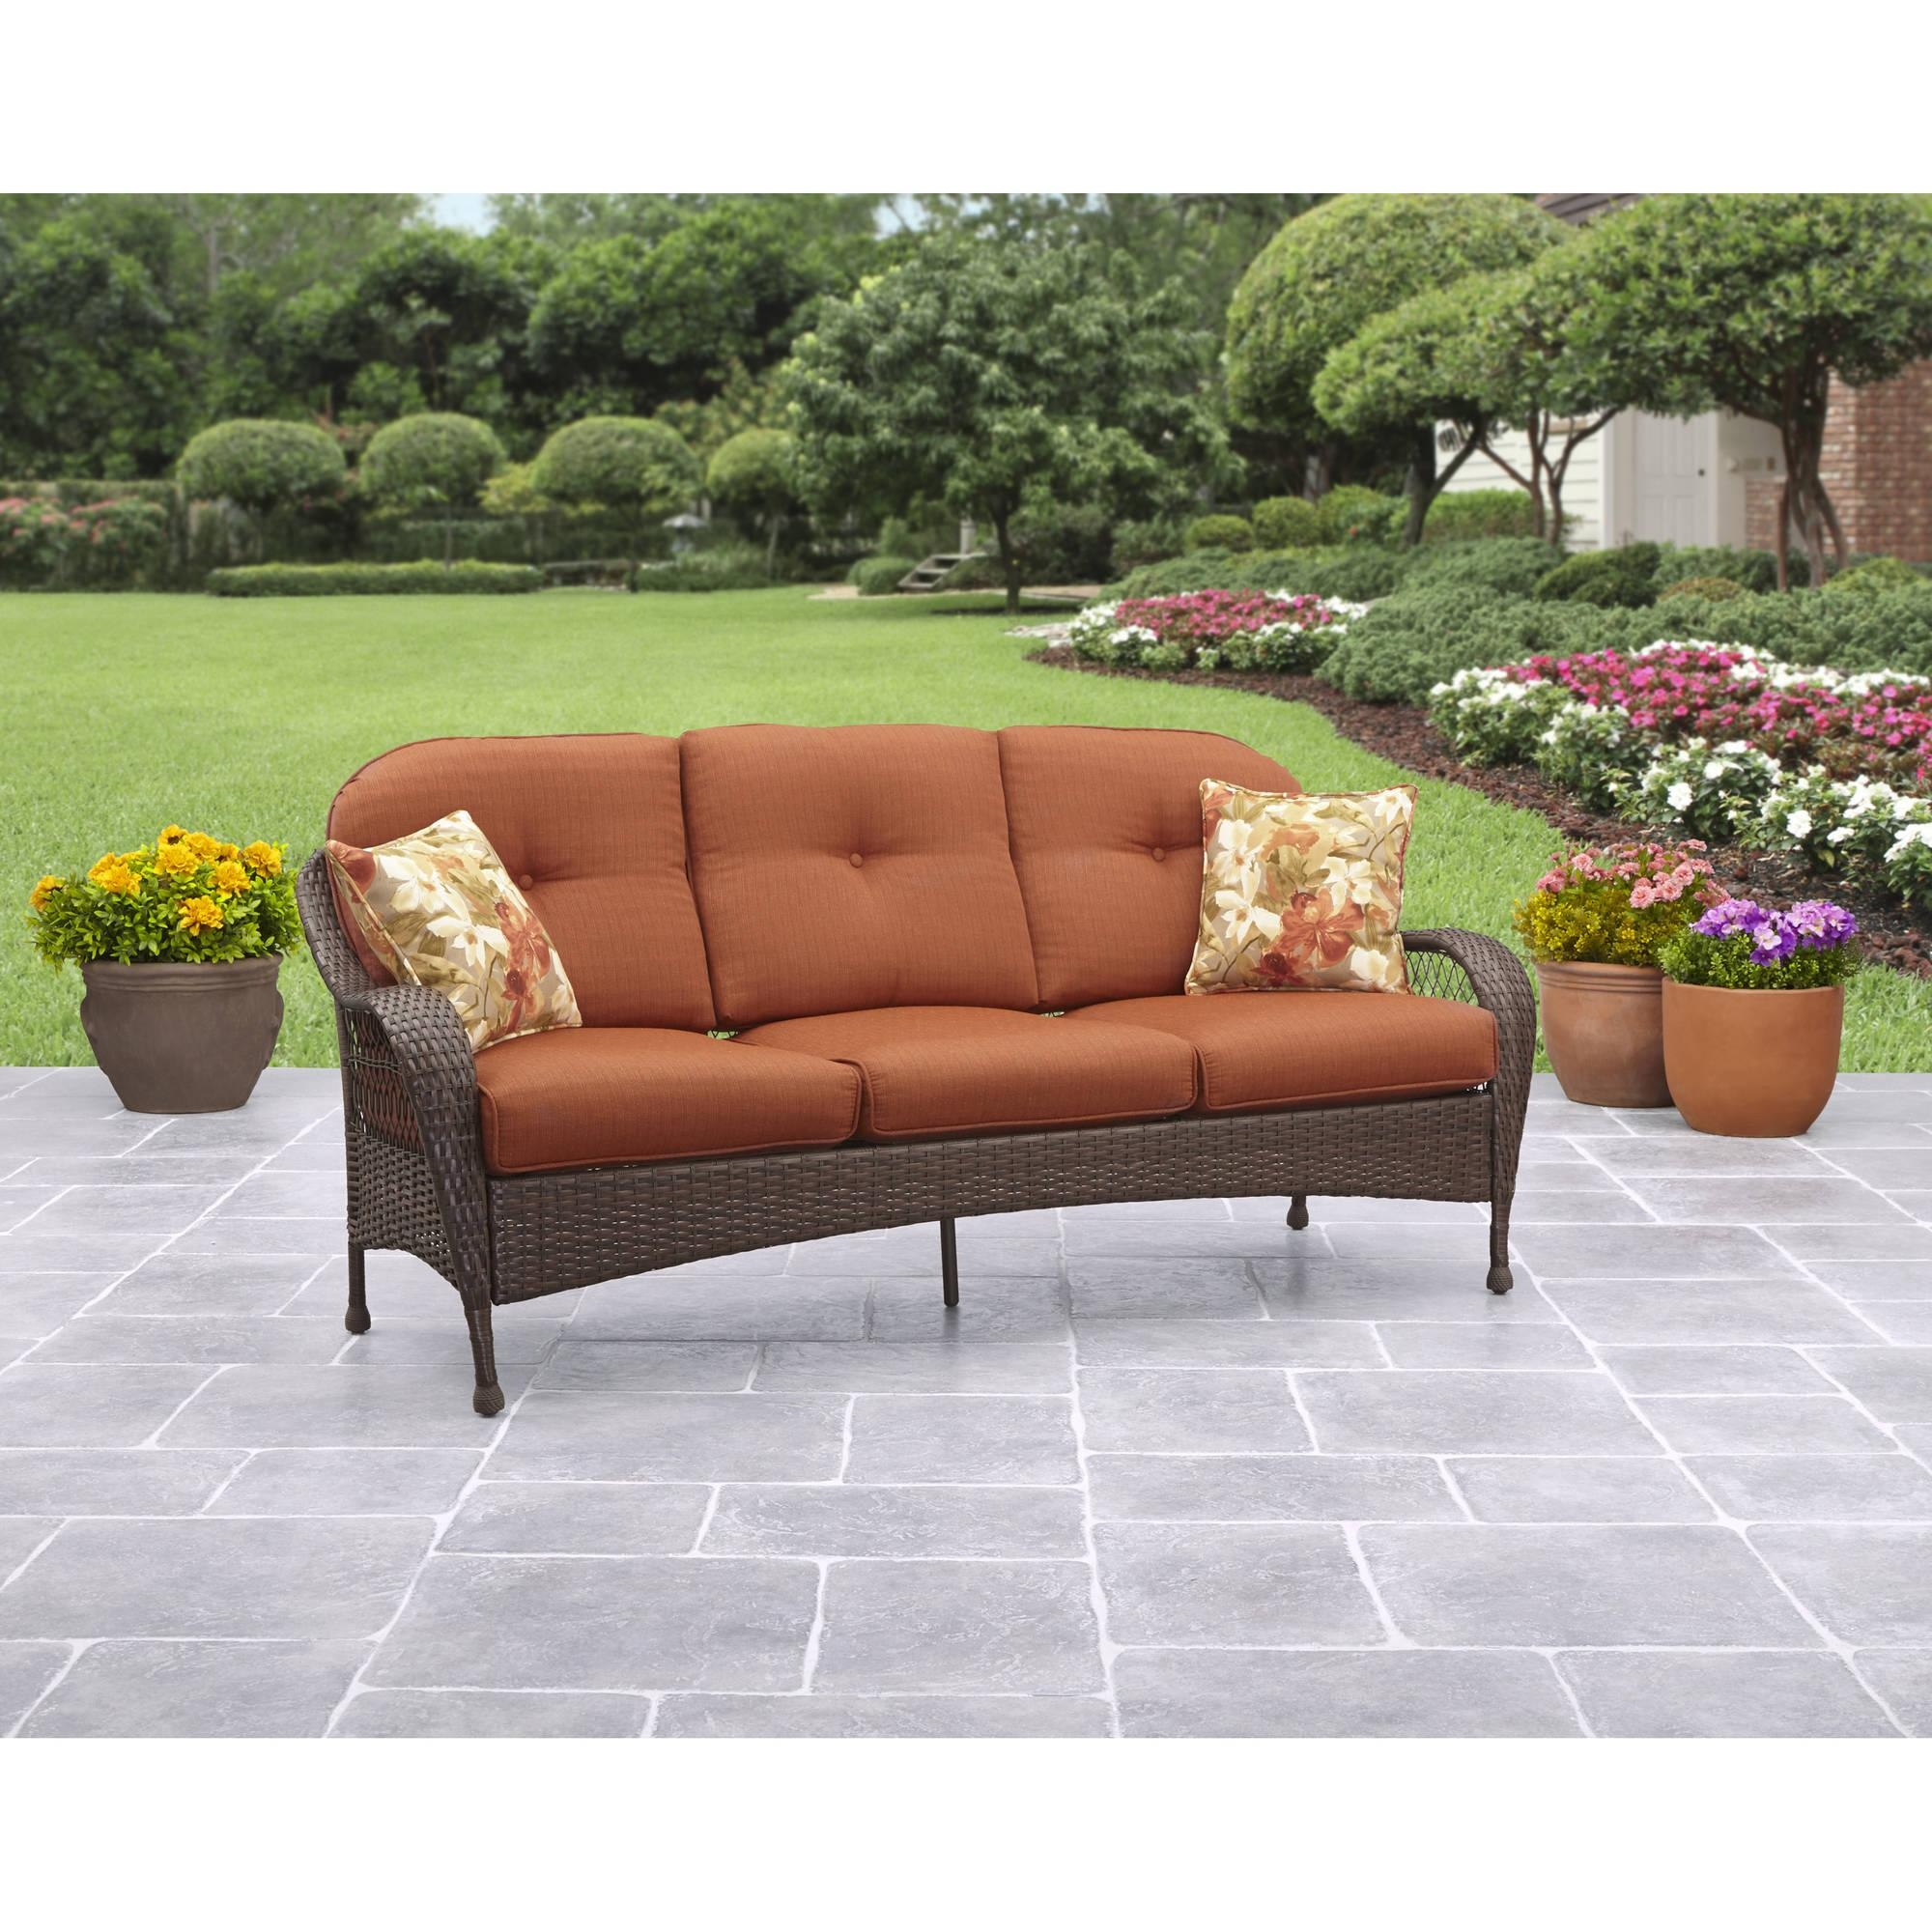 20 top outdoor sofa chairs sofa ideas for Better homes and gardens azalea ridge chaise lounge